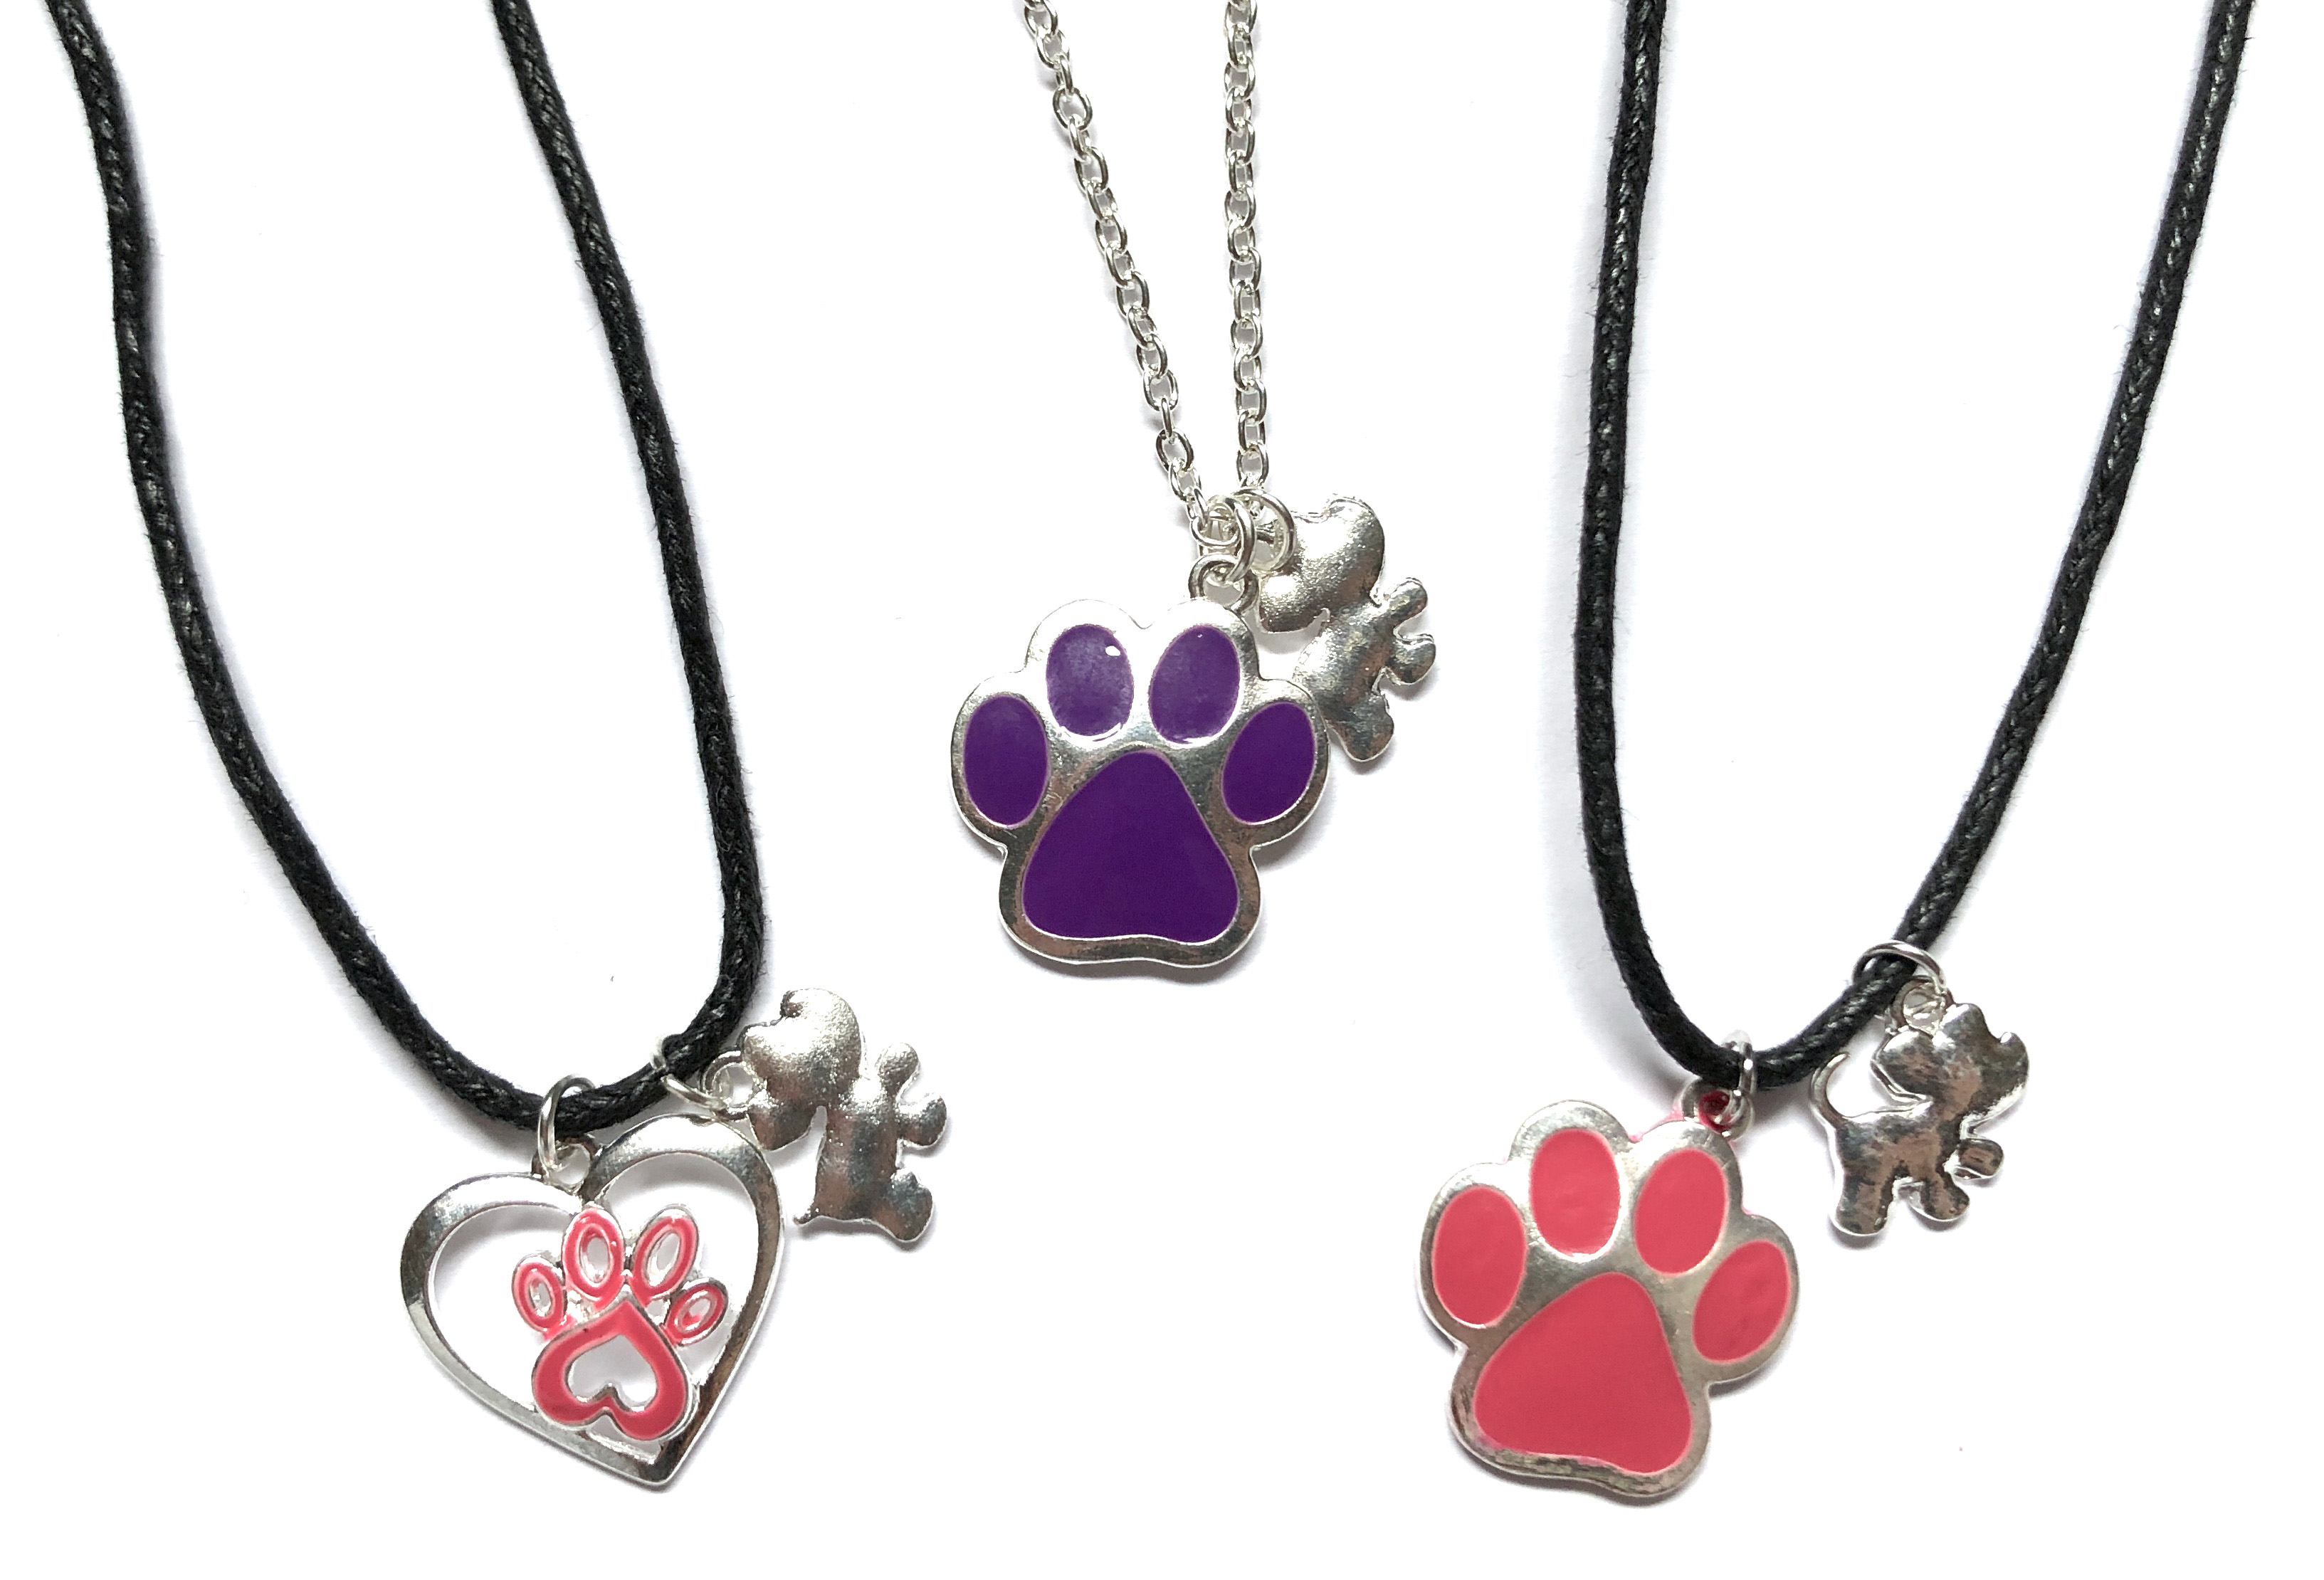 Paw Print & Puppy Necklaces